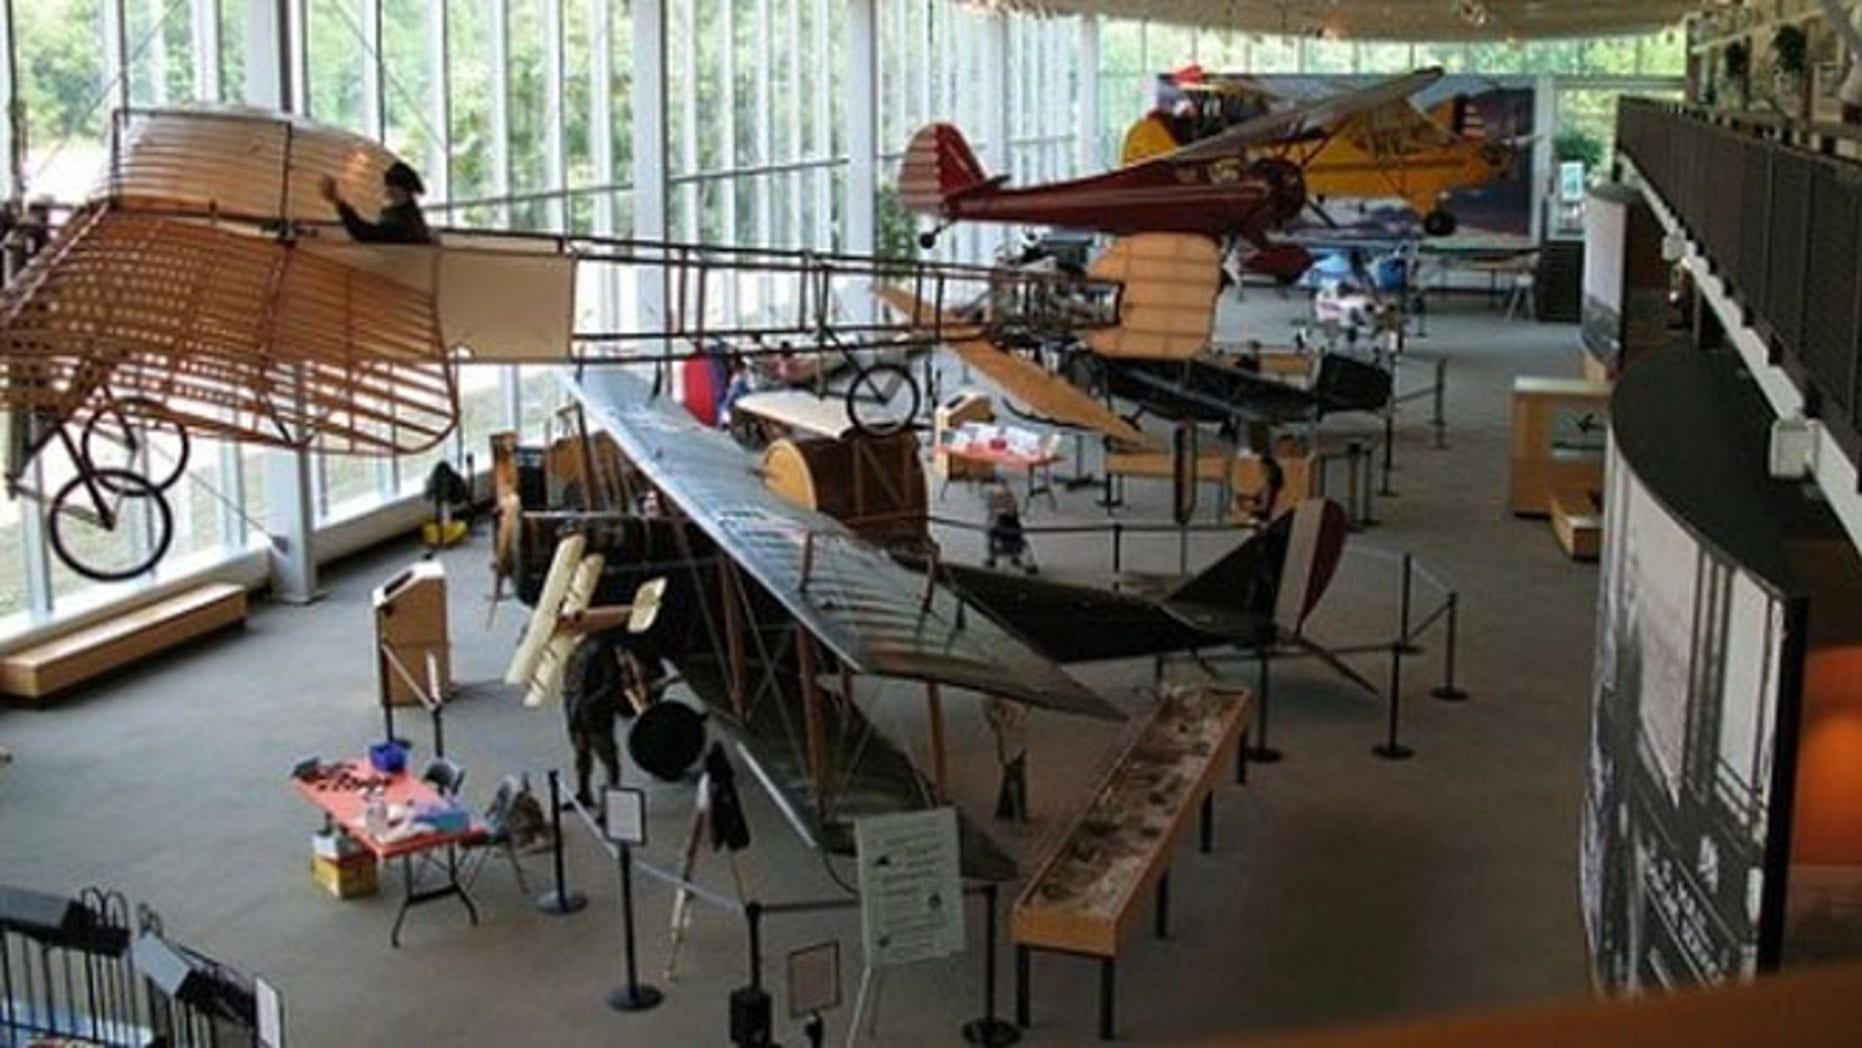 College Park Aviation Museum is near the College Park Airport, the world's oldest continuously operating airport.